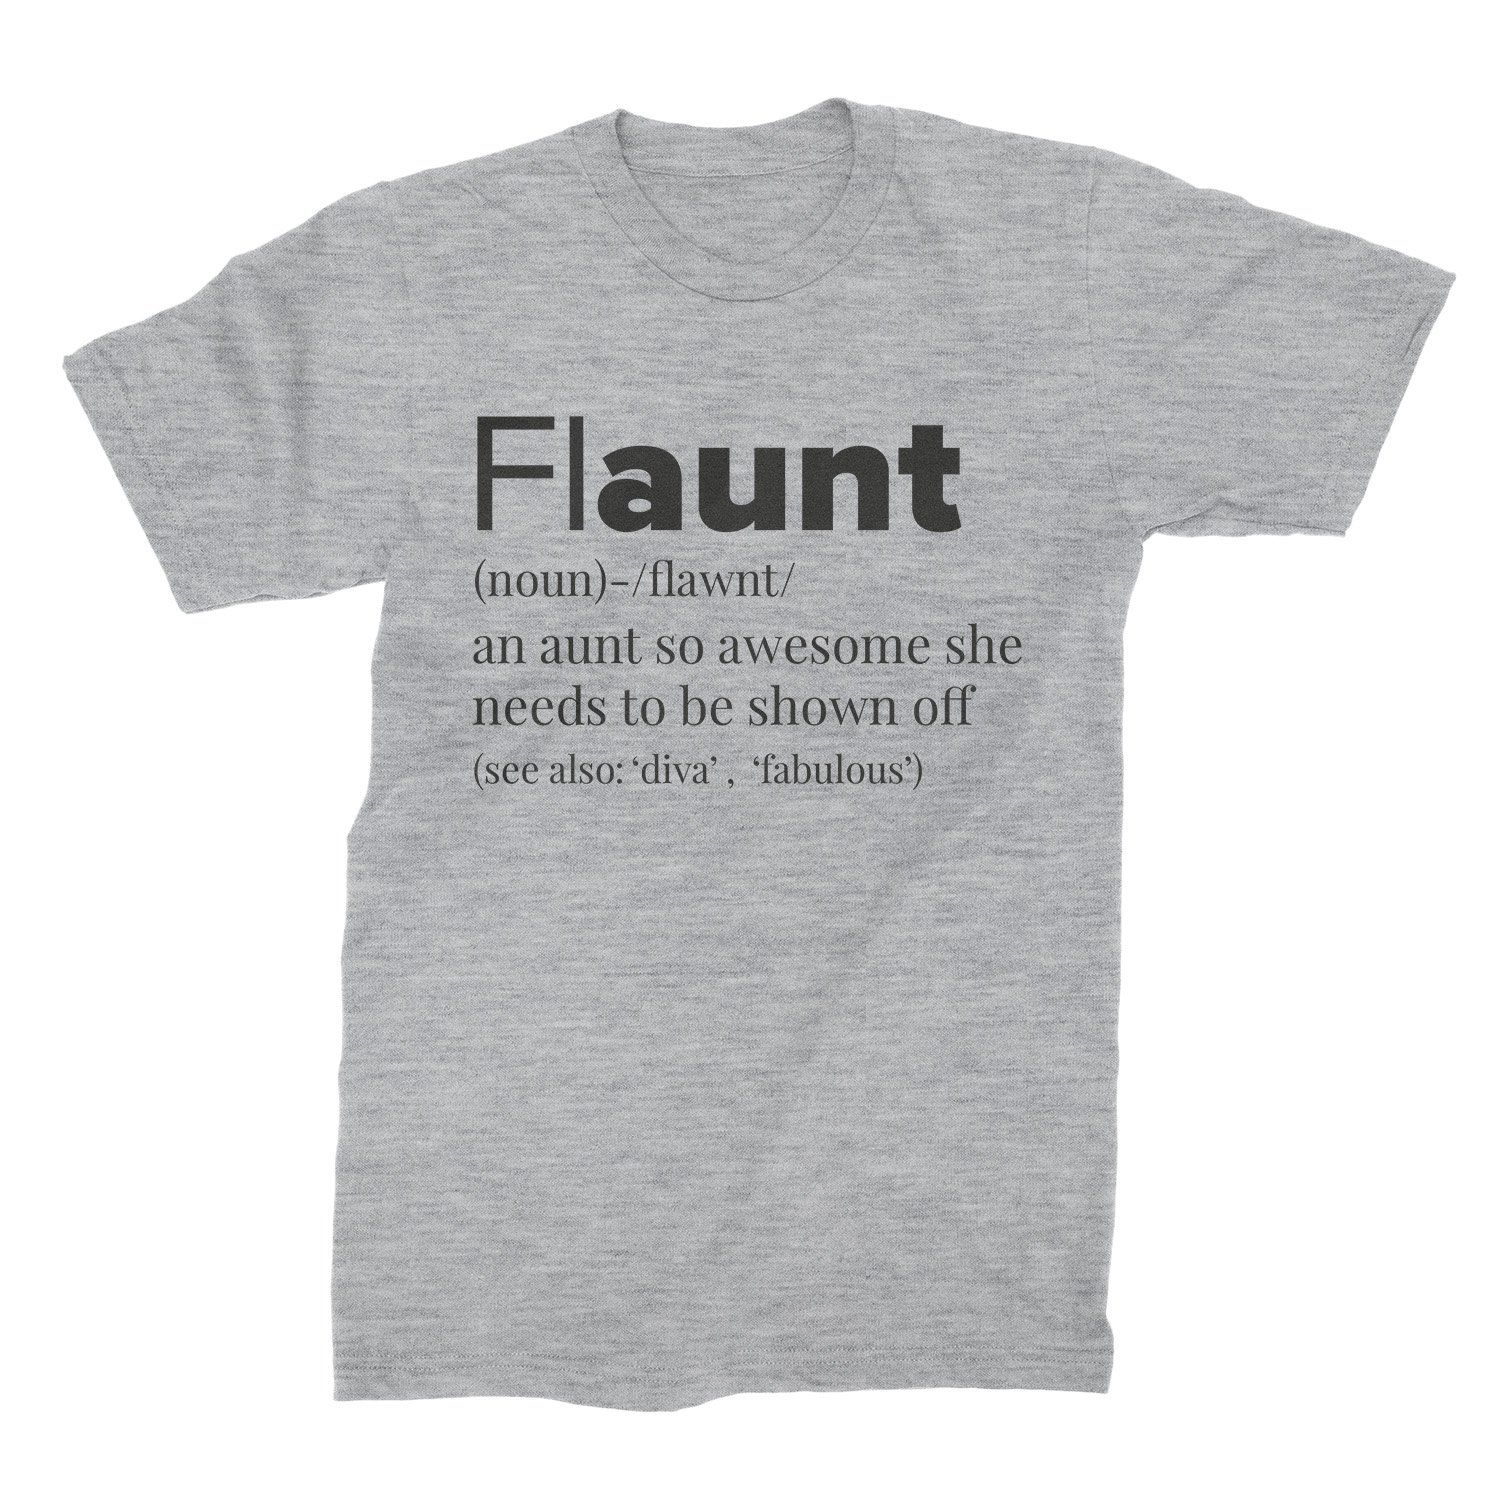 716502506e FLAUNT-Fun-Aunt-T-Shirt-Funny-Aunt-Shirt-Awesome-Aunt-Tee-Flaunt-Auntie -Clothing